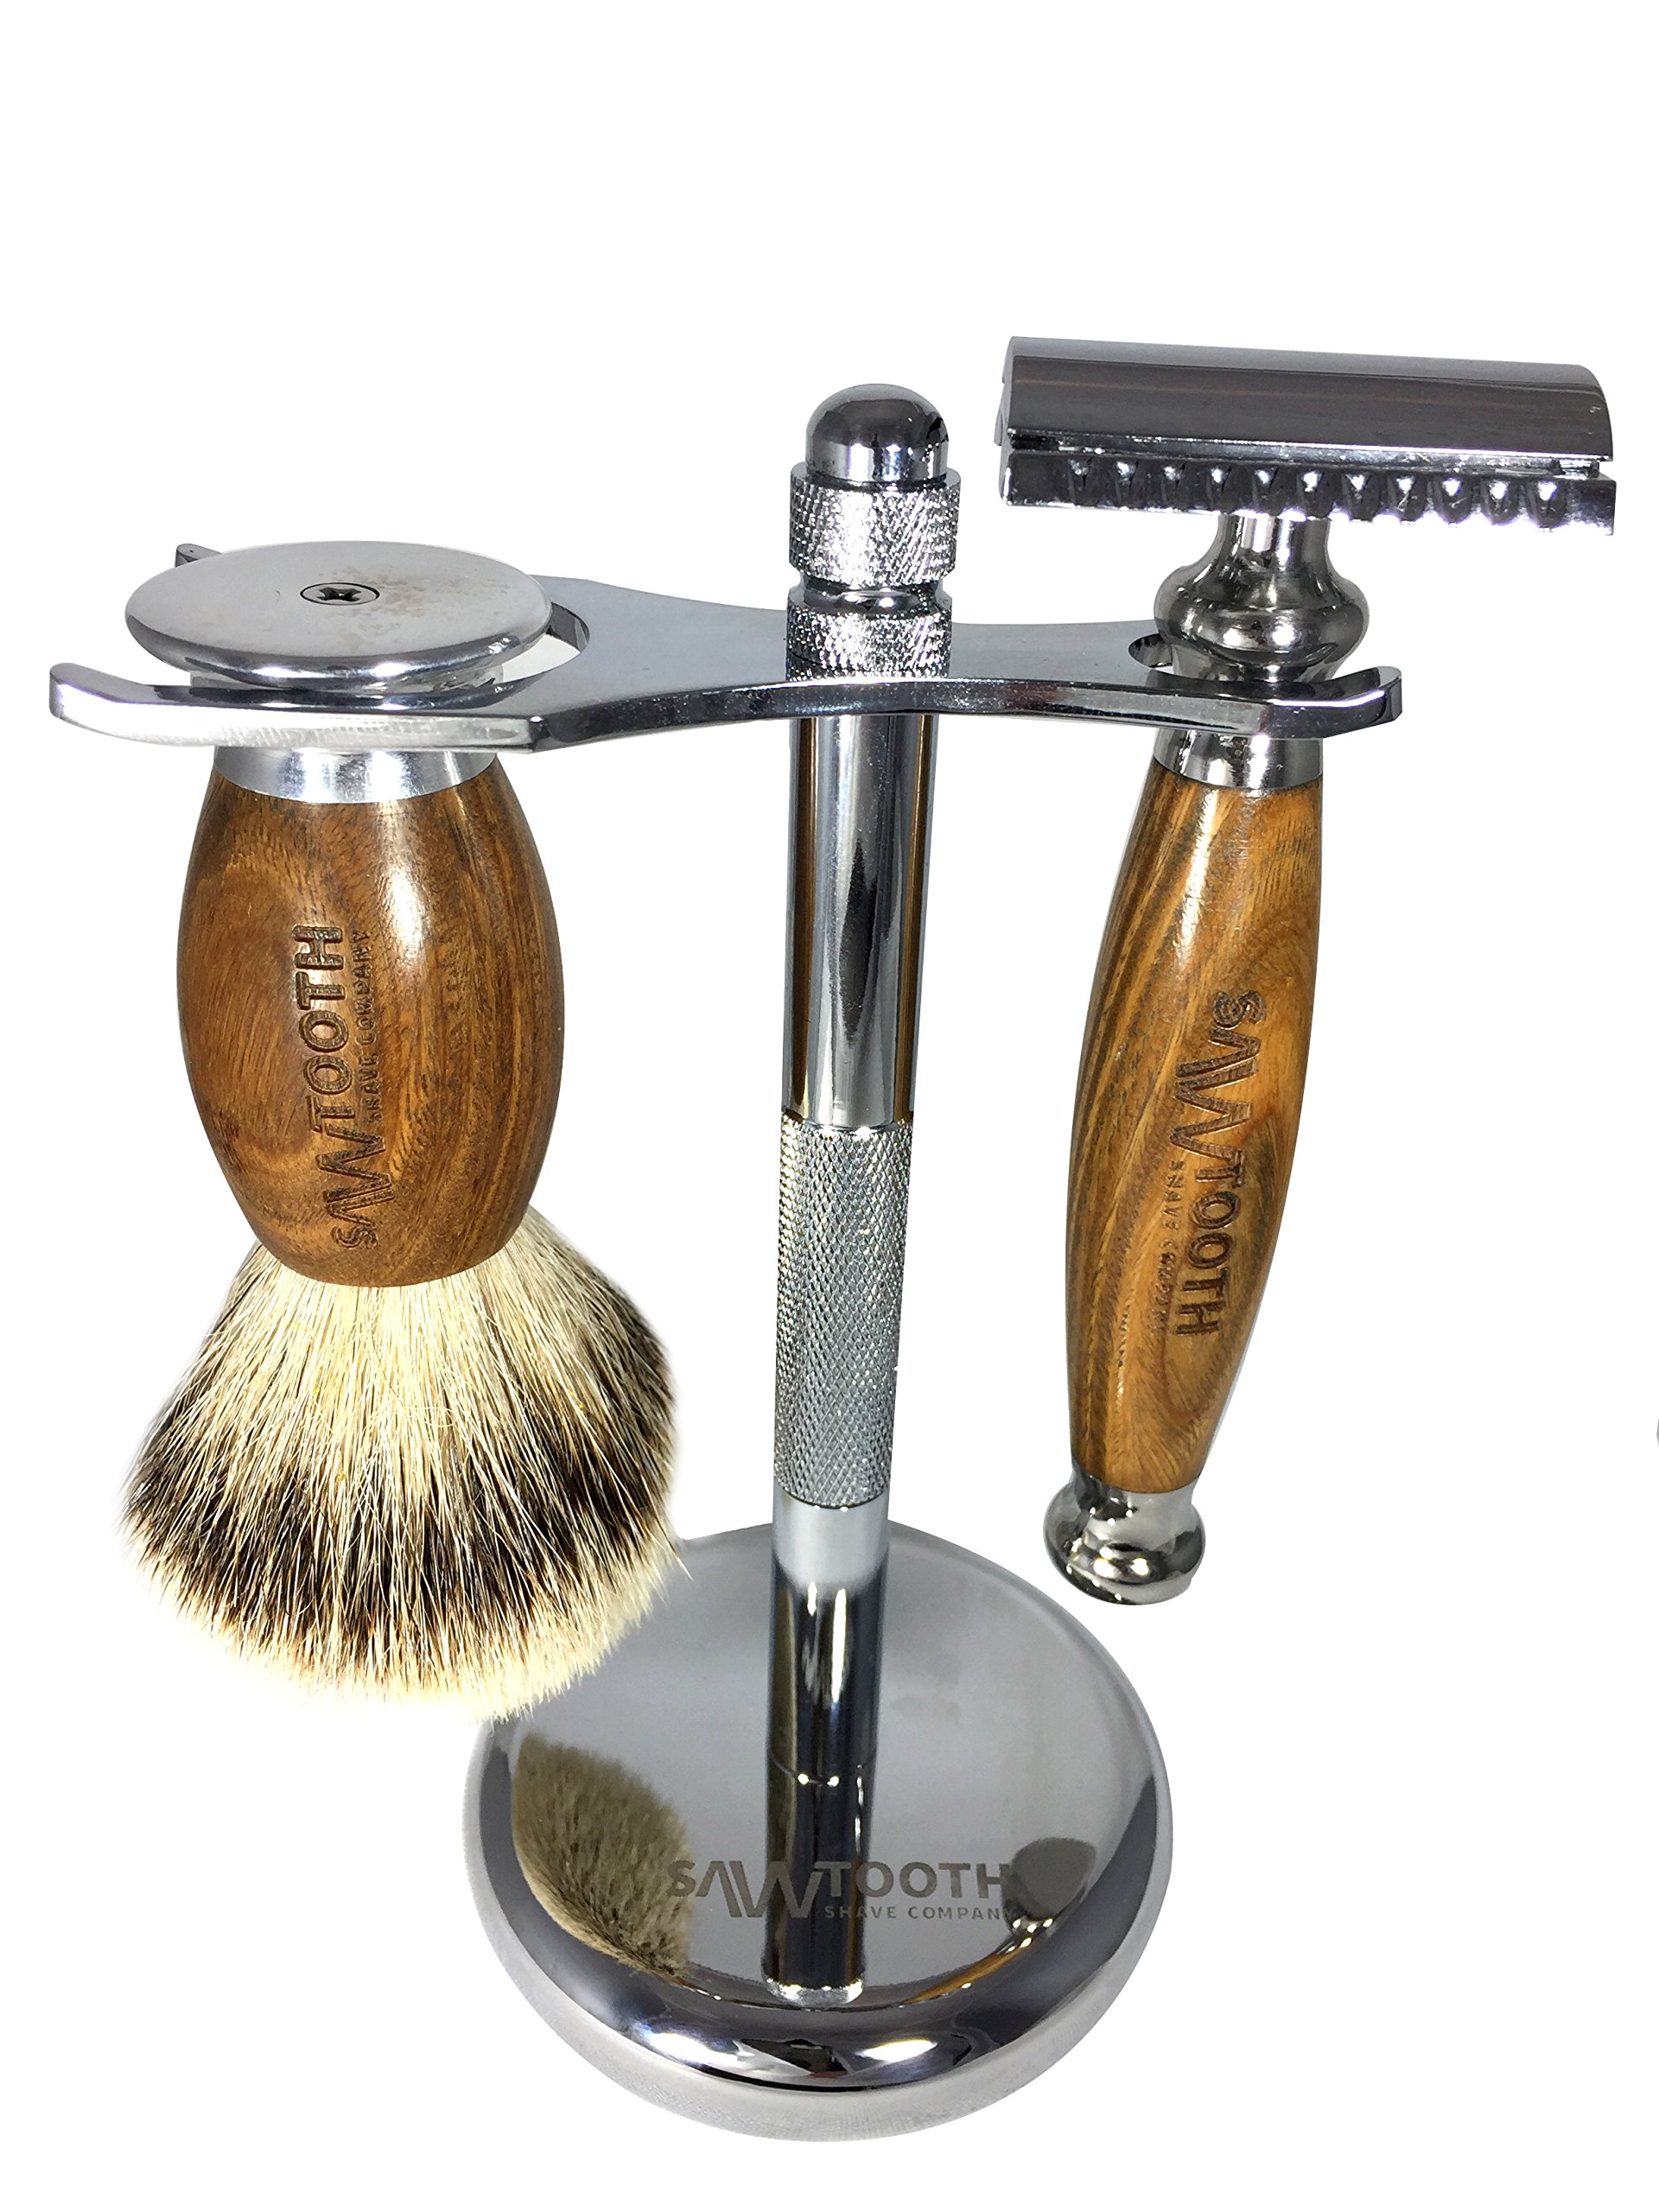 Sawtooth Shave Co. Double Edge Safety Razor Gift Set - Handmade Razor with Badger Hair Brush, Stand, and Leather Carry Case